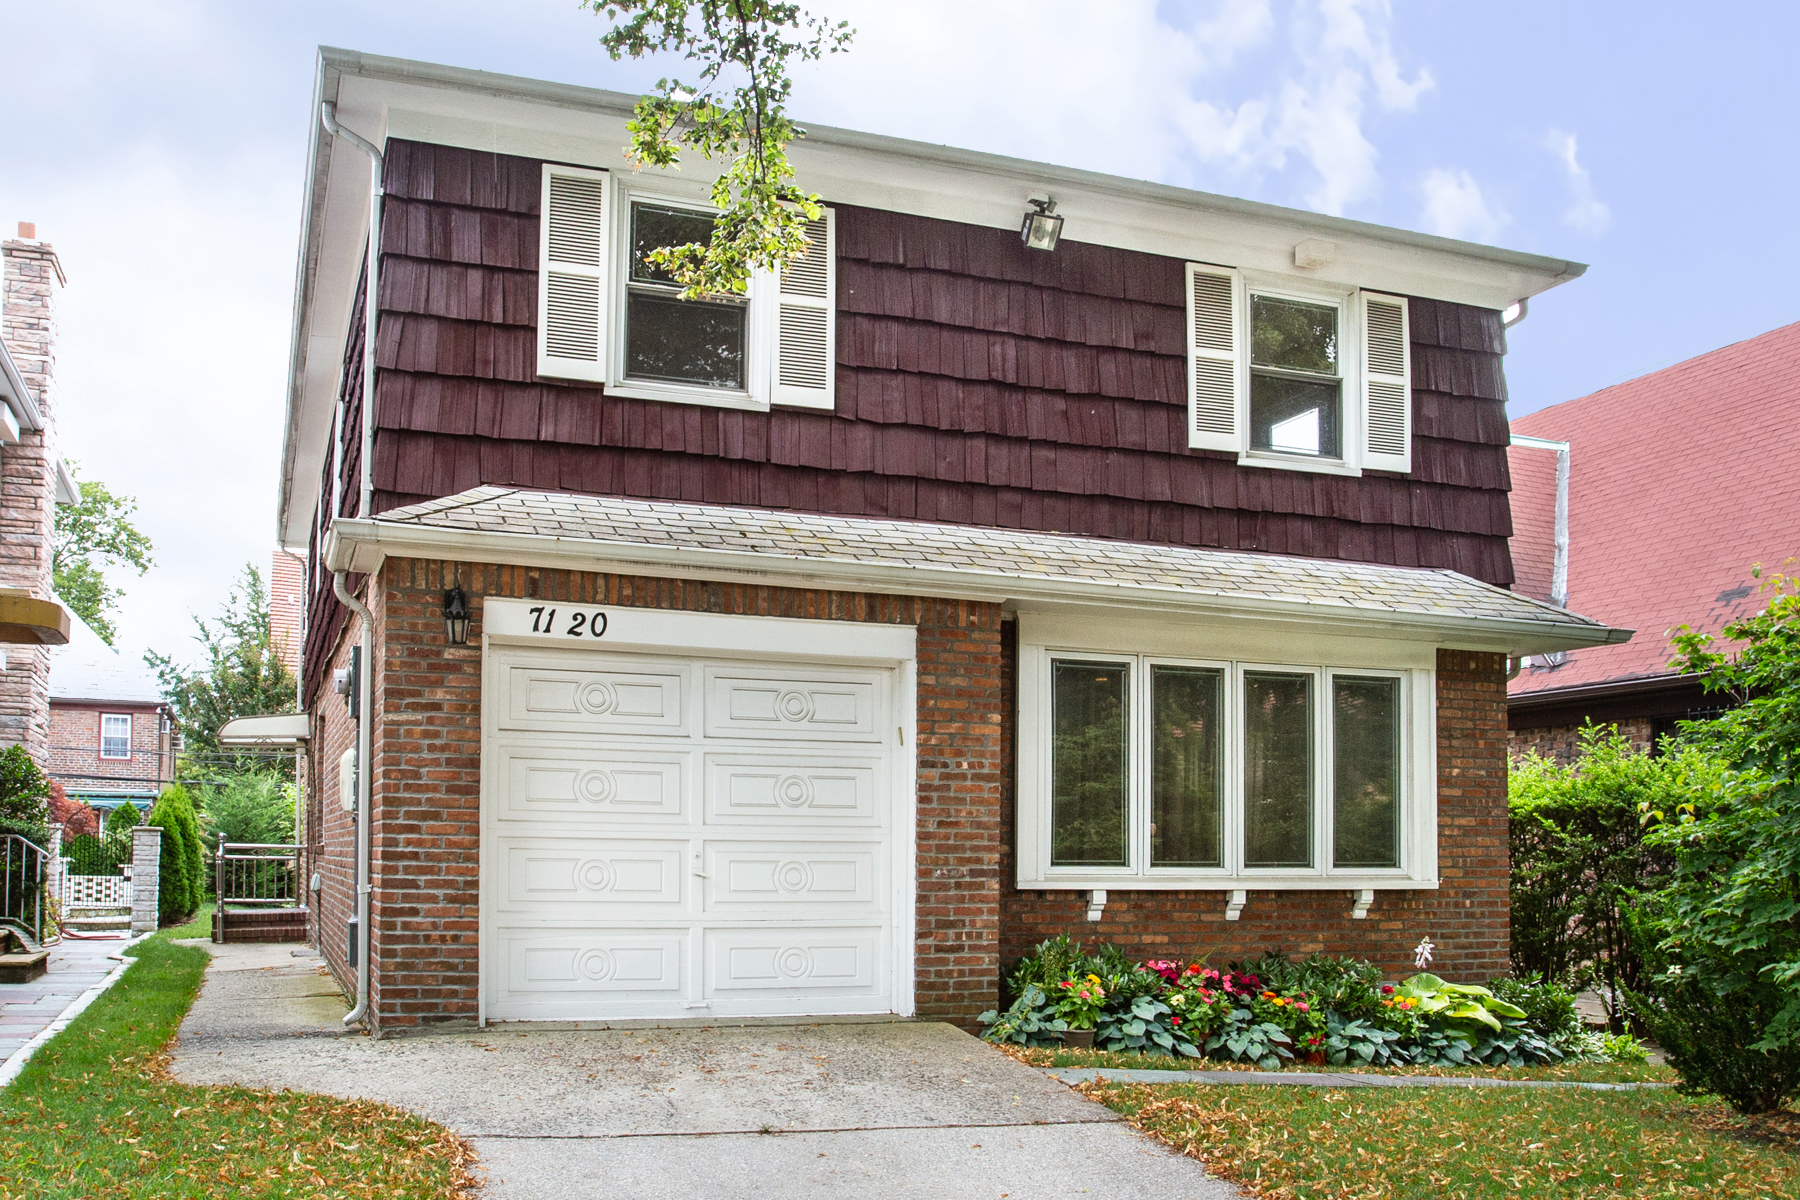 """Single Family Homes for Sale at """"DESIRABLE CUSTOM CONTEMPORARY IN VAN COURT"""" 71-20 Harrow Street,, Forest Hills Van Court, Forest Hills, New York 11375 United States"""